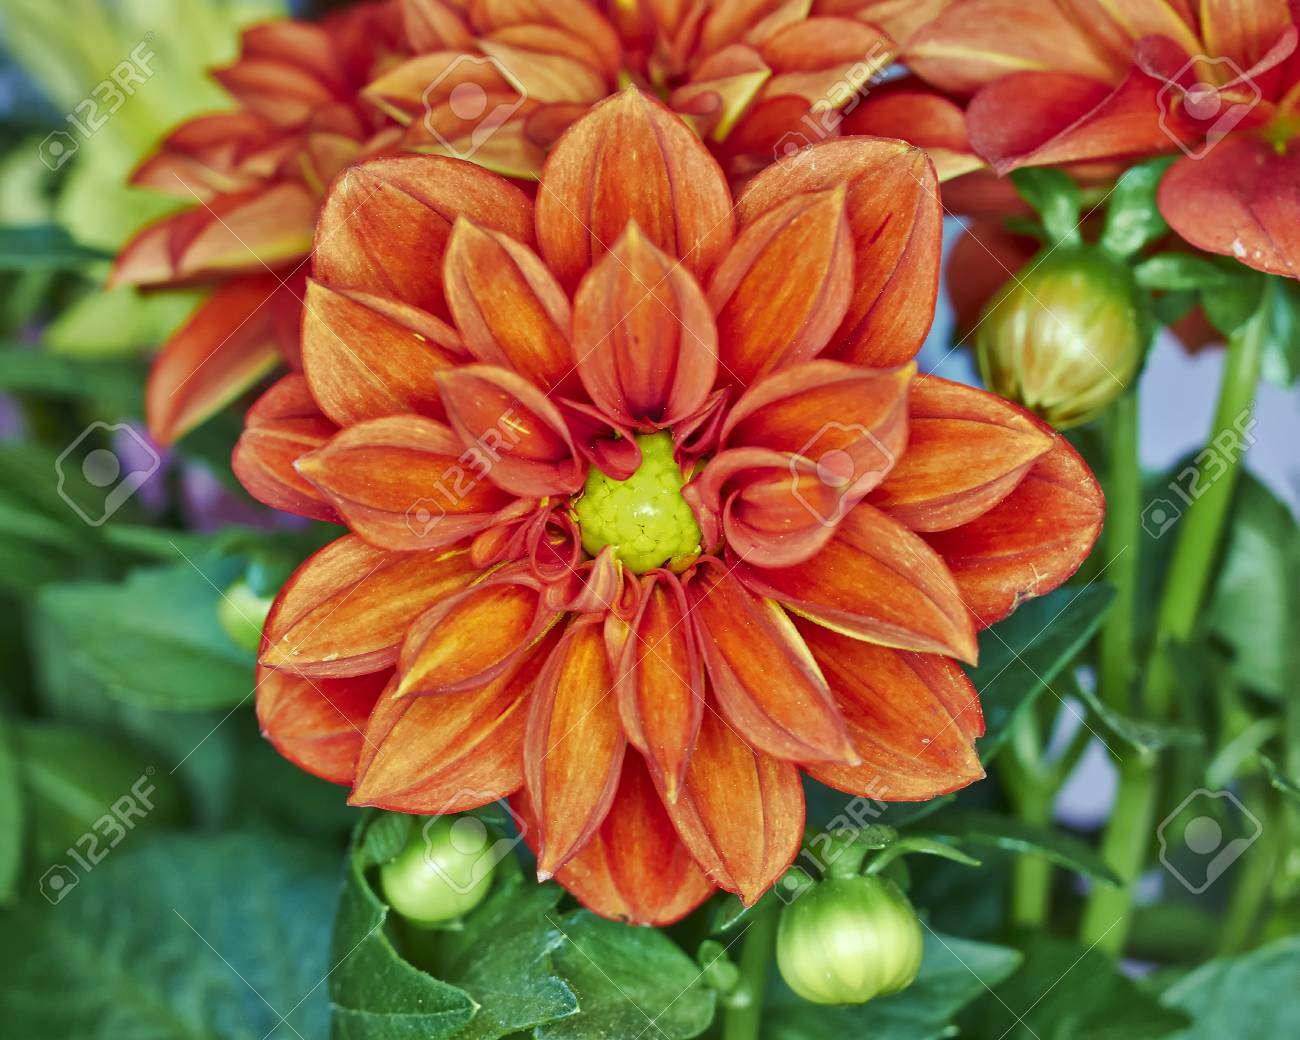 Orange Dahlia Flower Colorful Stock Photo Picture And Royalty Free